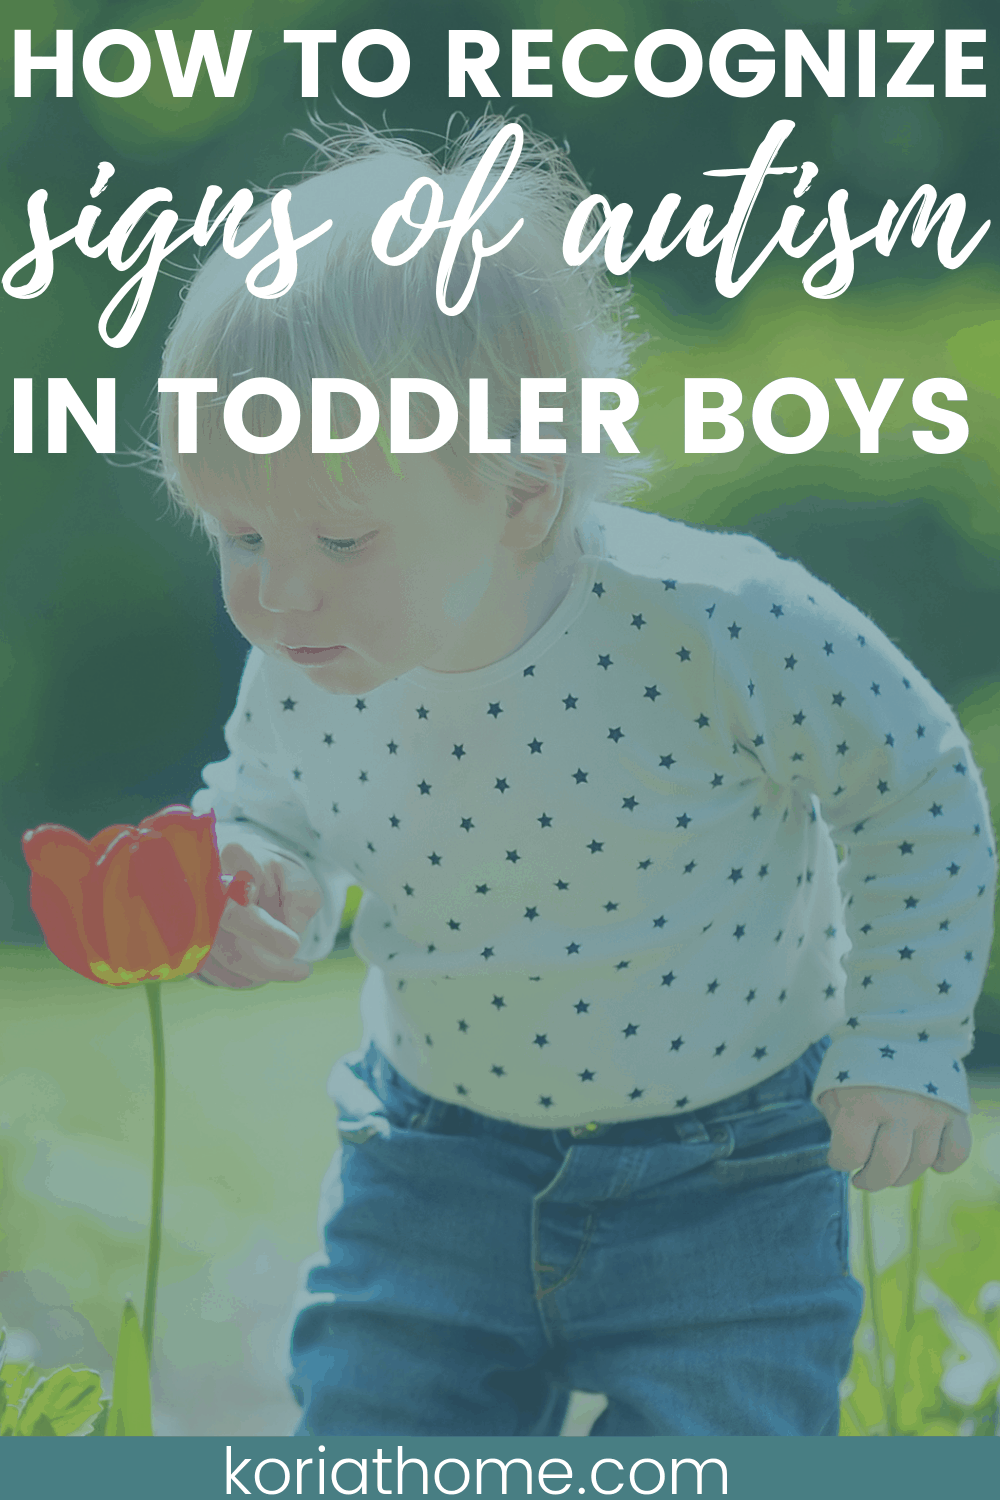 The Different Signs of Autism in Toddler Boys vs. Toddler Girls 1